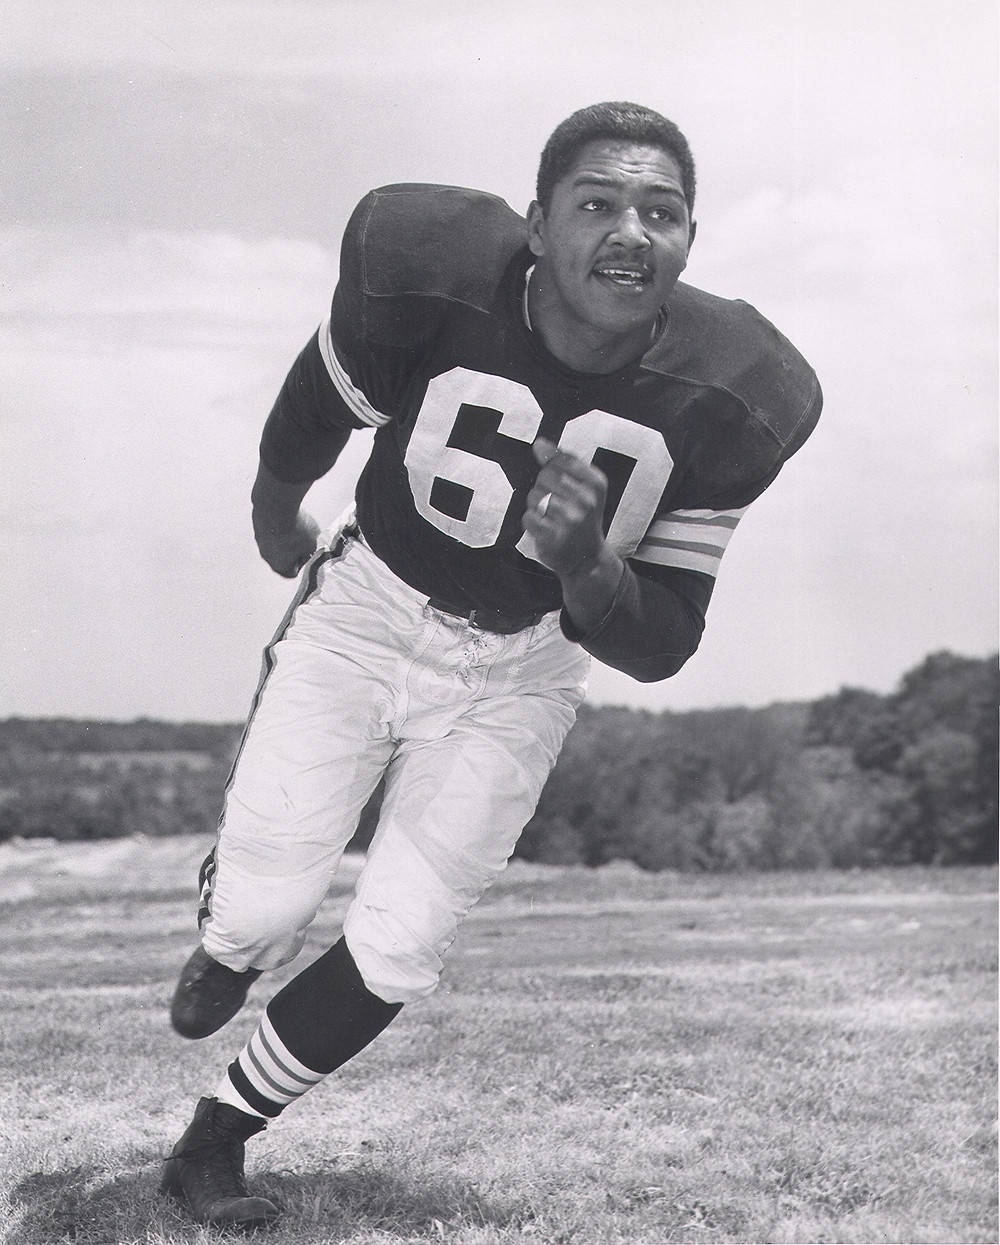 Harold in his Cleveland Browns uniform in 1954